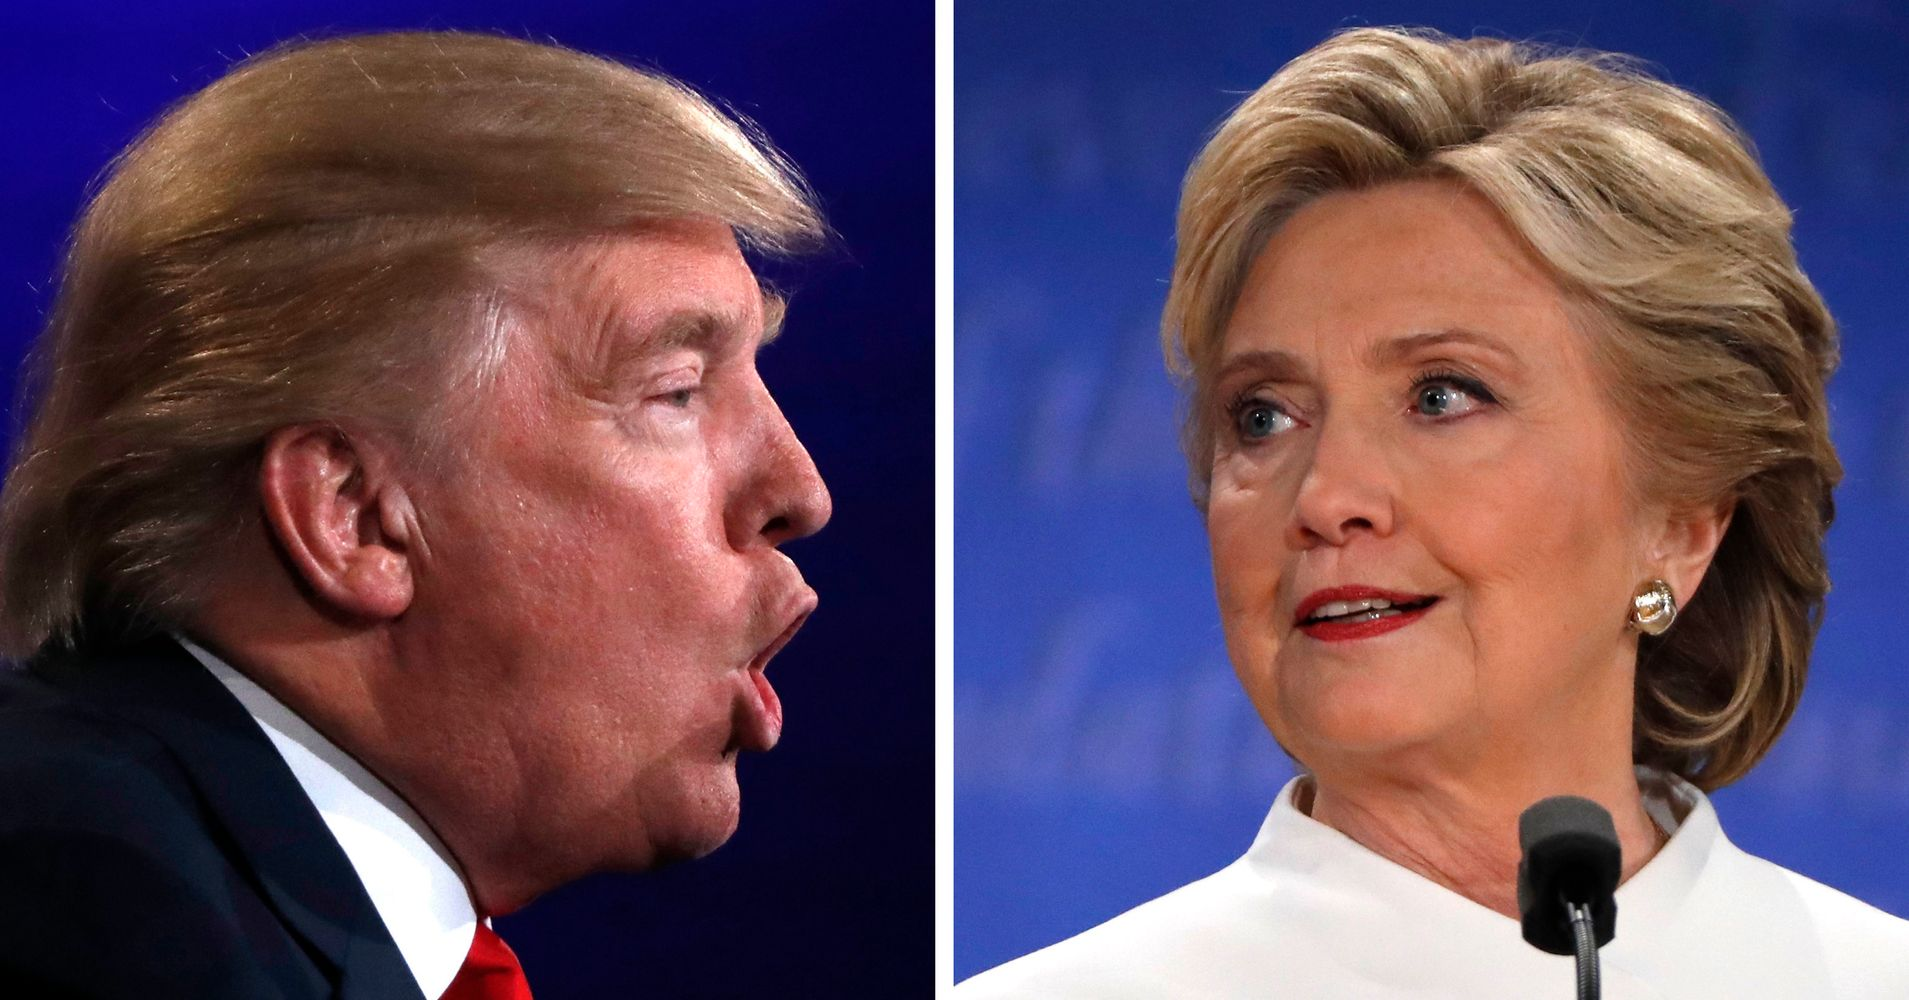 Donald Trump Is Right: Hillary Was Held To A Different Standard